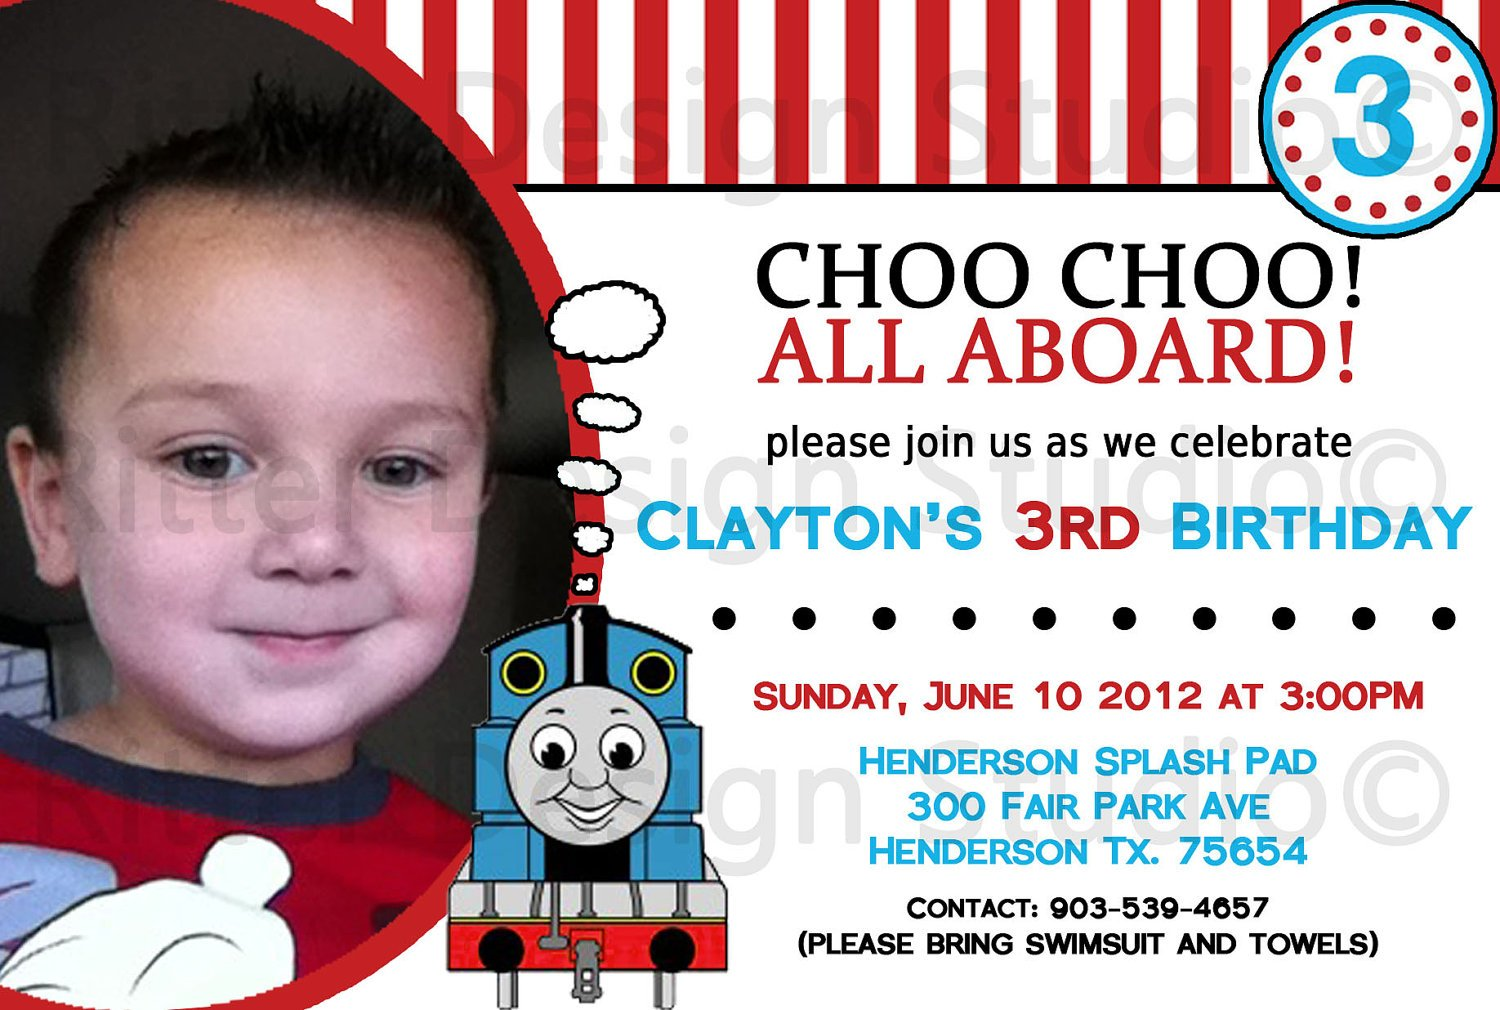 Thomas the Train Photo Birthday Invitations Template Ideas – Thomas the Train Birthday Invites